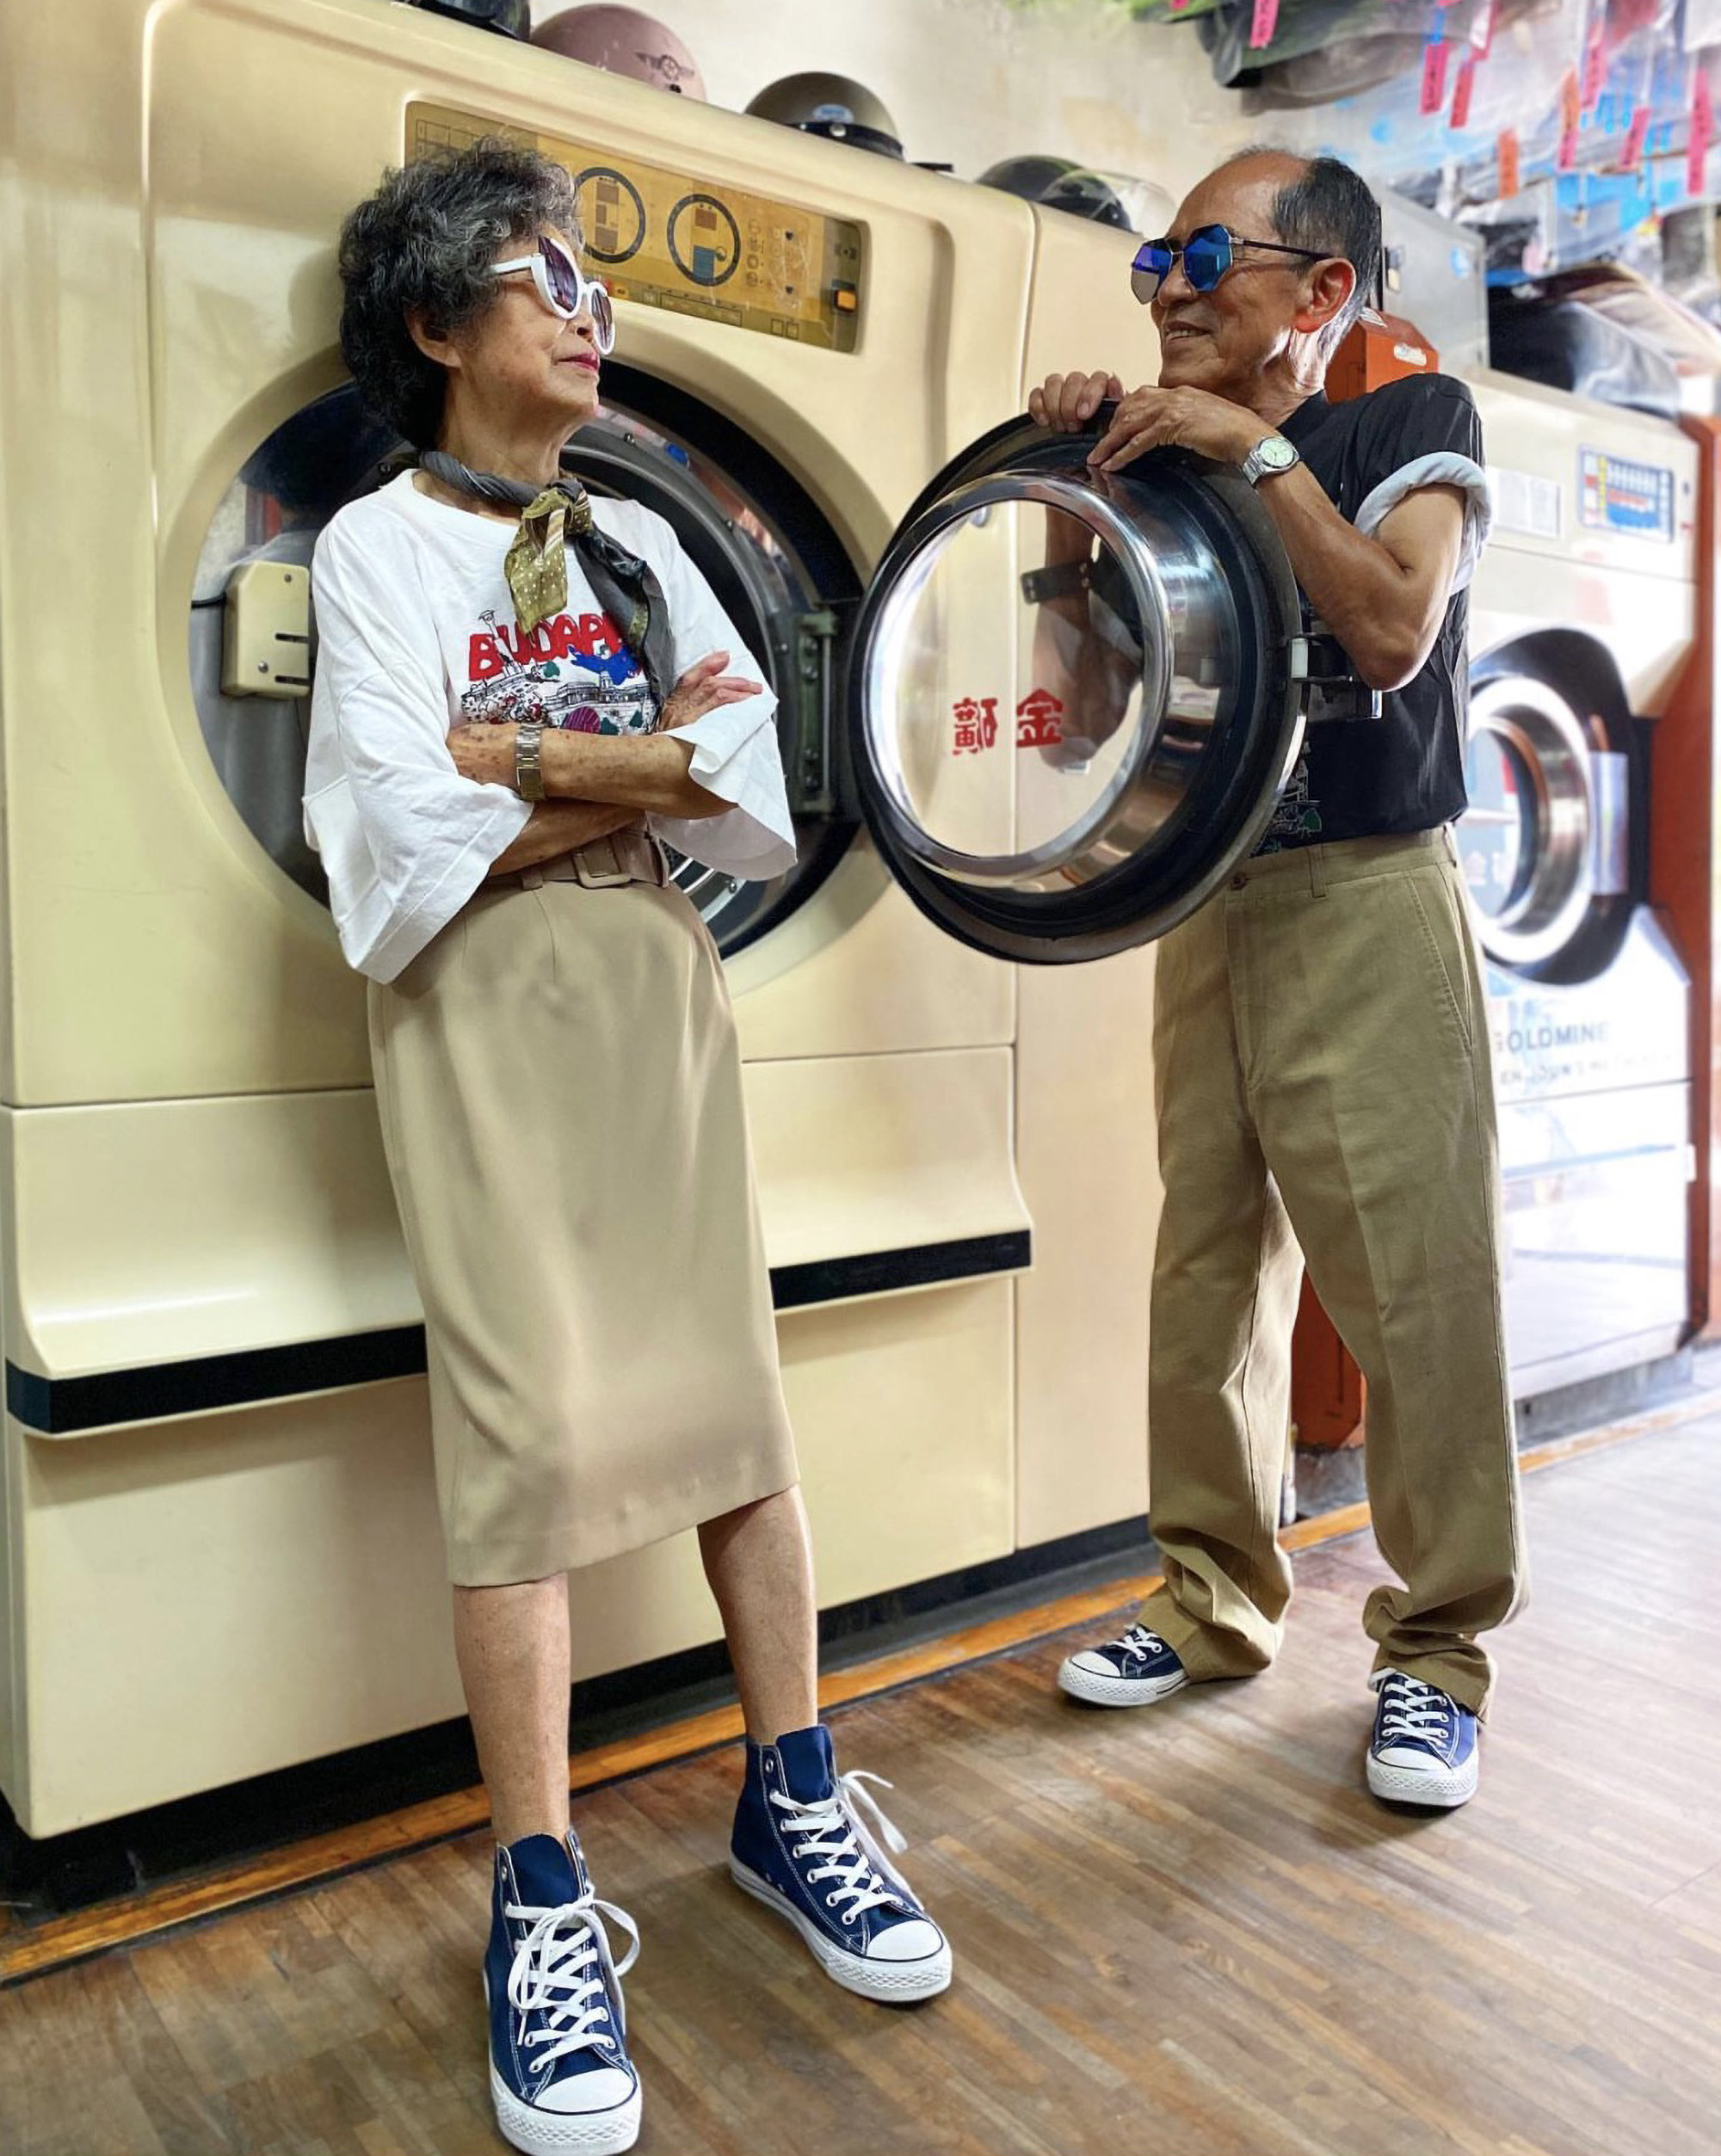 Elderly Taiwanese couple tops the fashion world with clothes left at their laundry